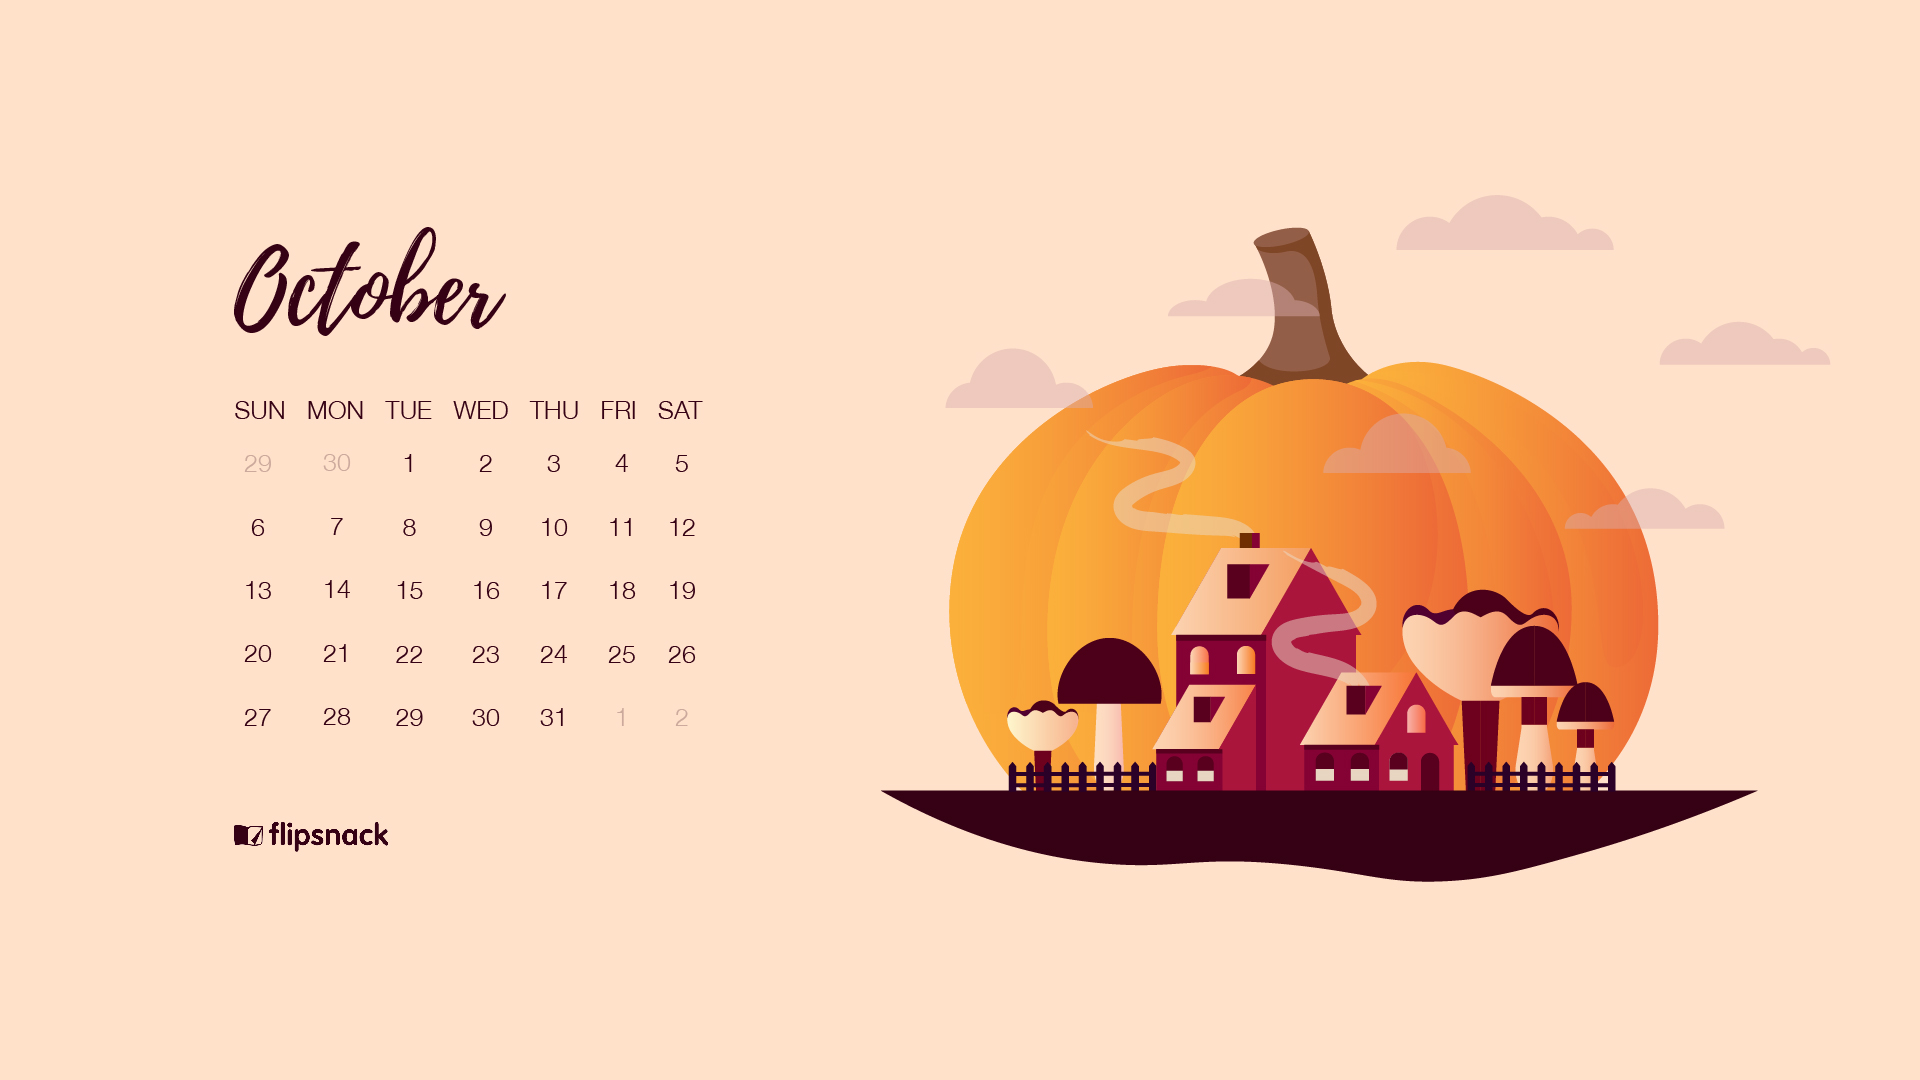 Free October 2019 Wallpaper Calendars Flipsnack Blog